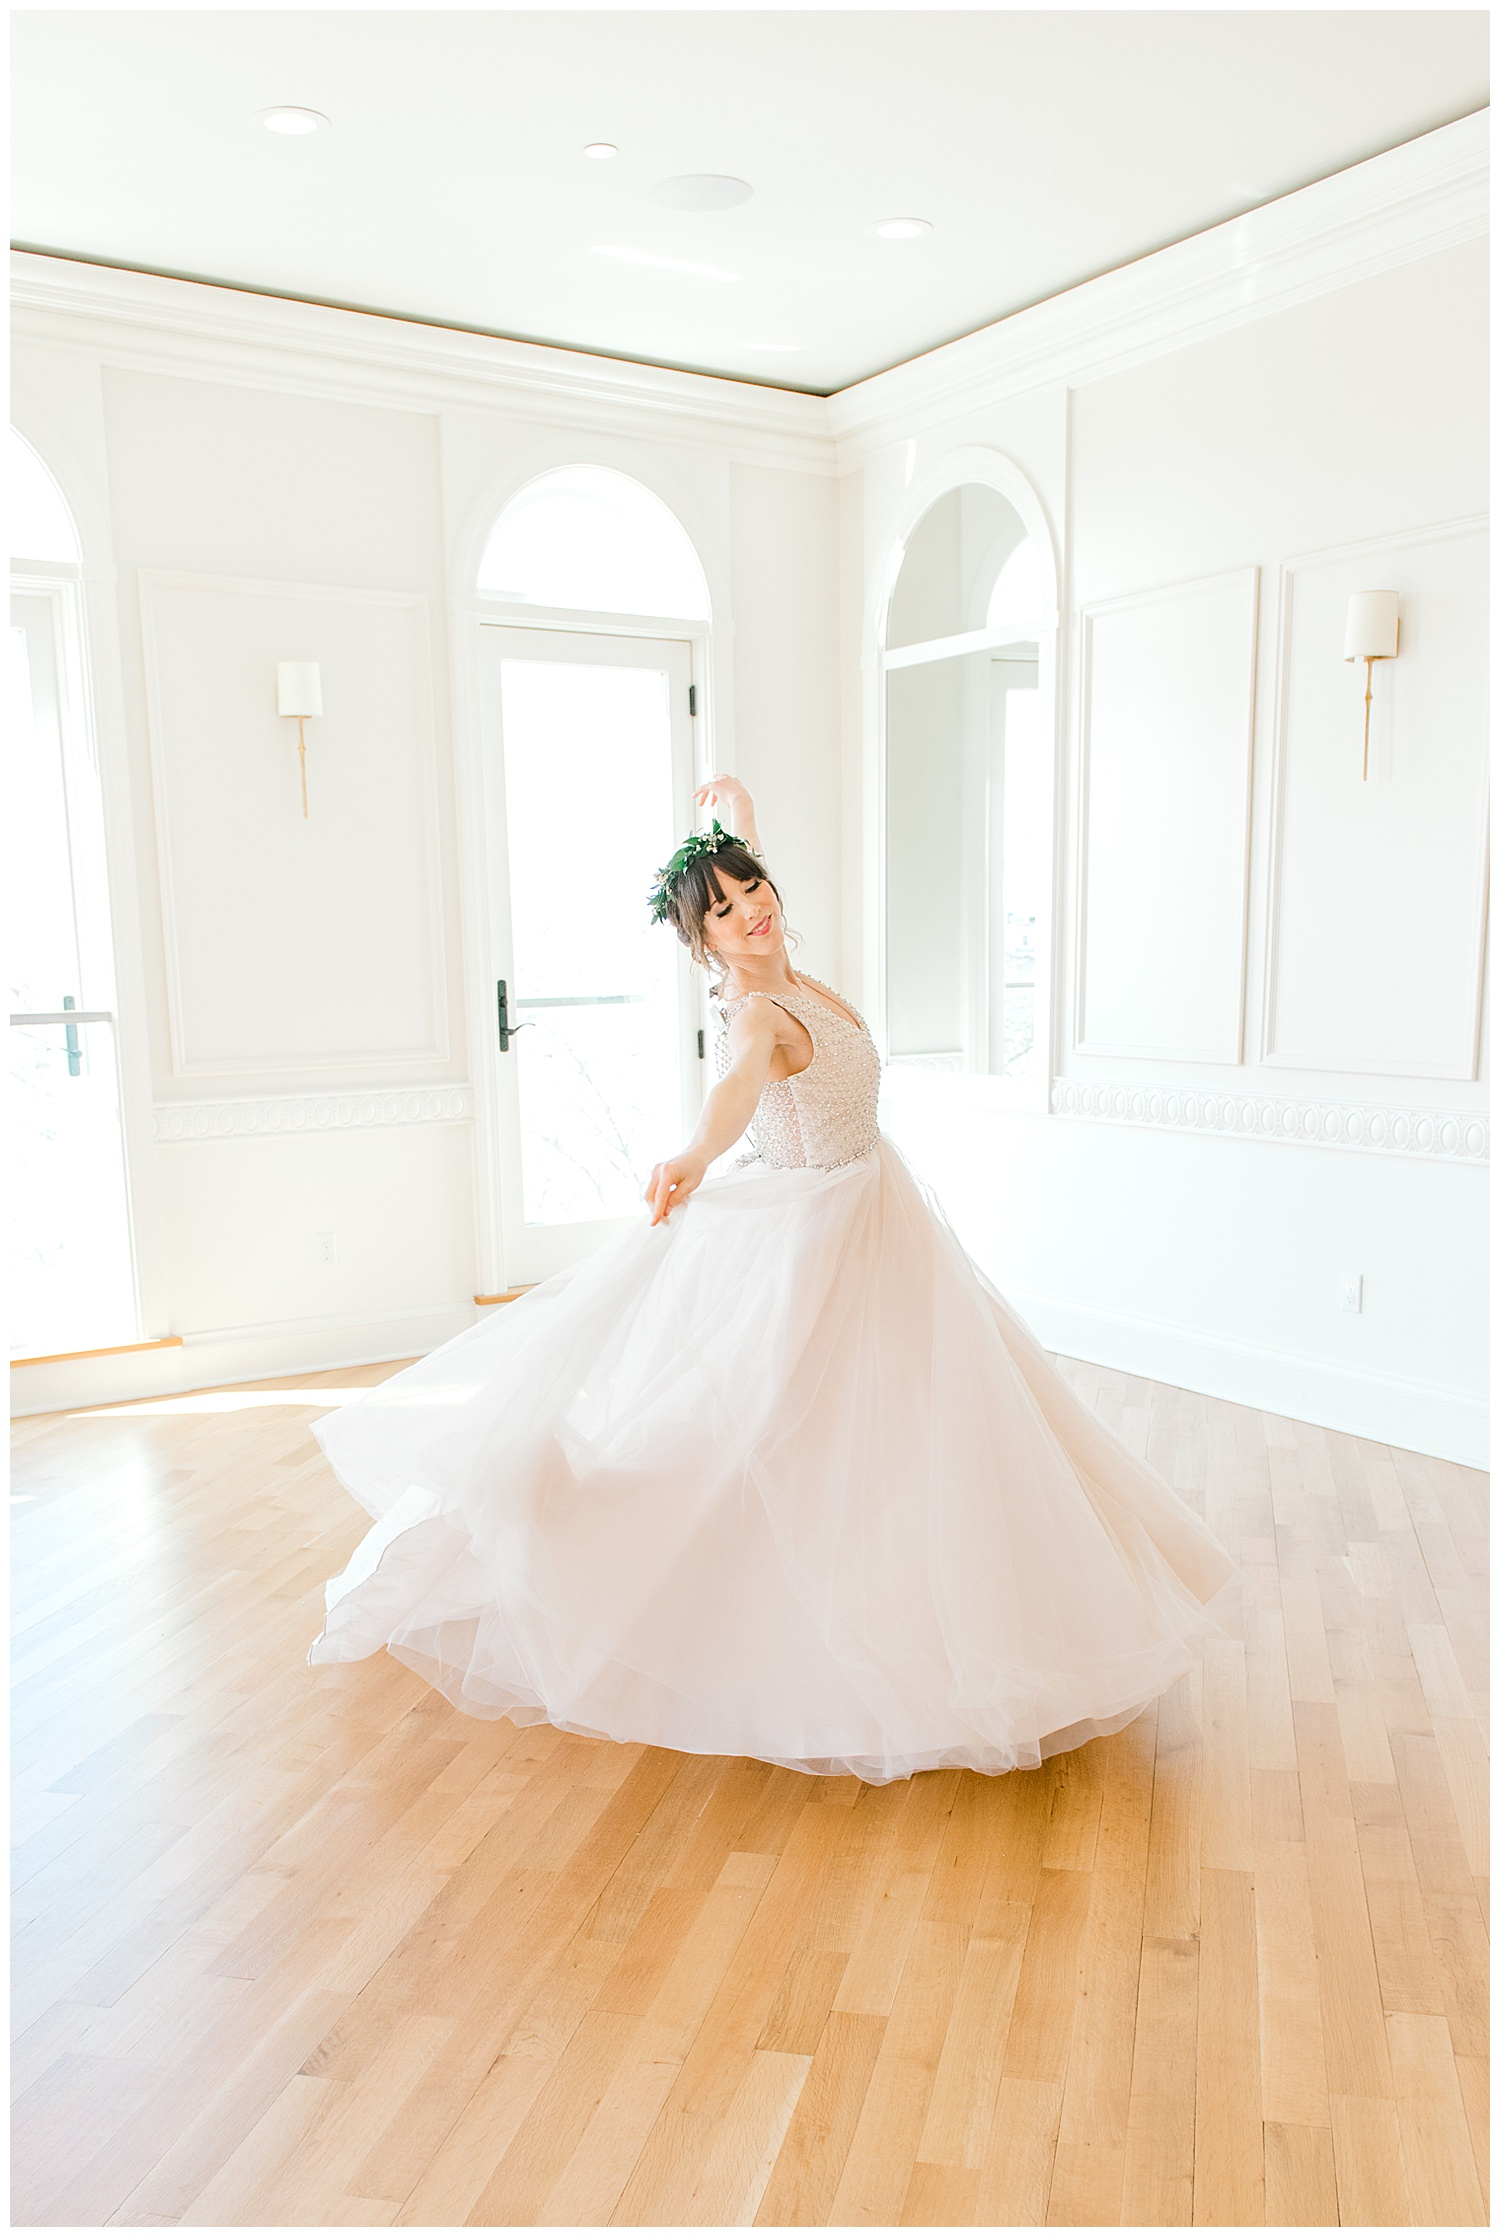 blush-ballerina-wedding-photography-newport-rhode-island-50.jpg